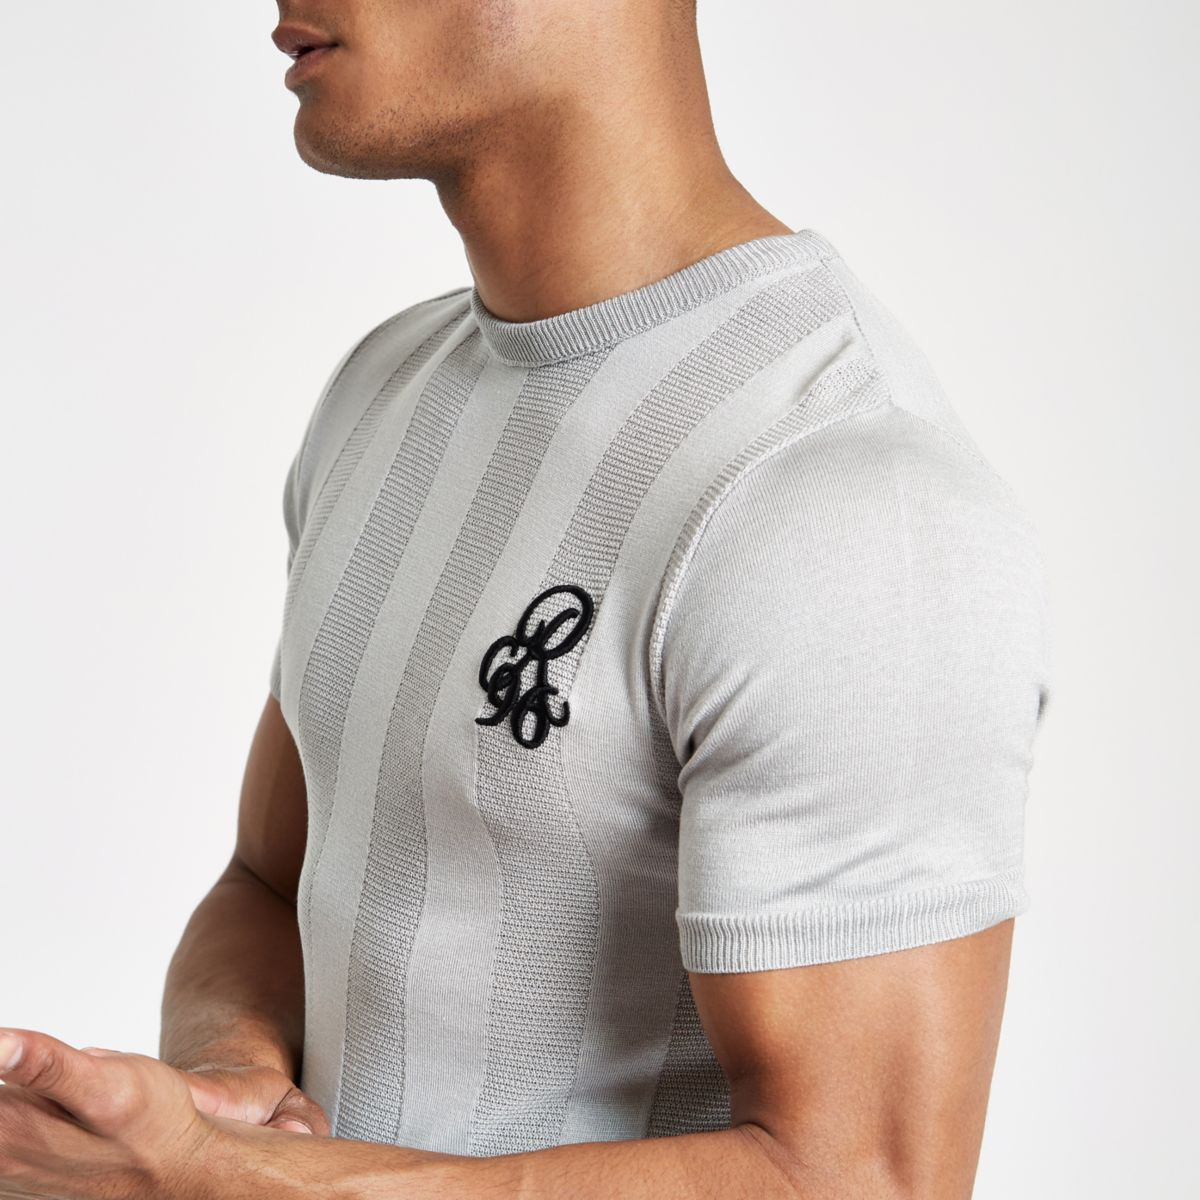 Grey muscle fit 'R96' T-shirt